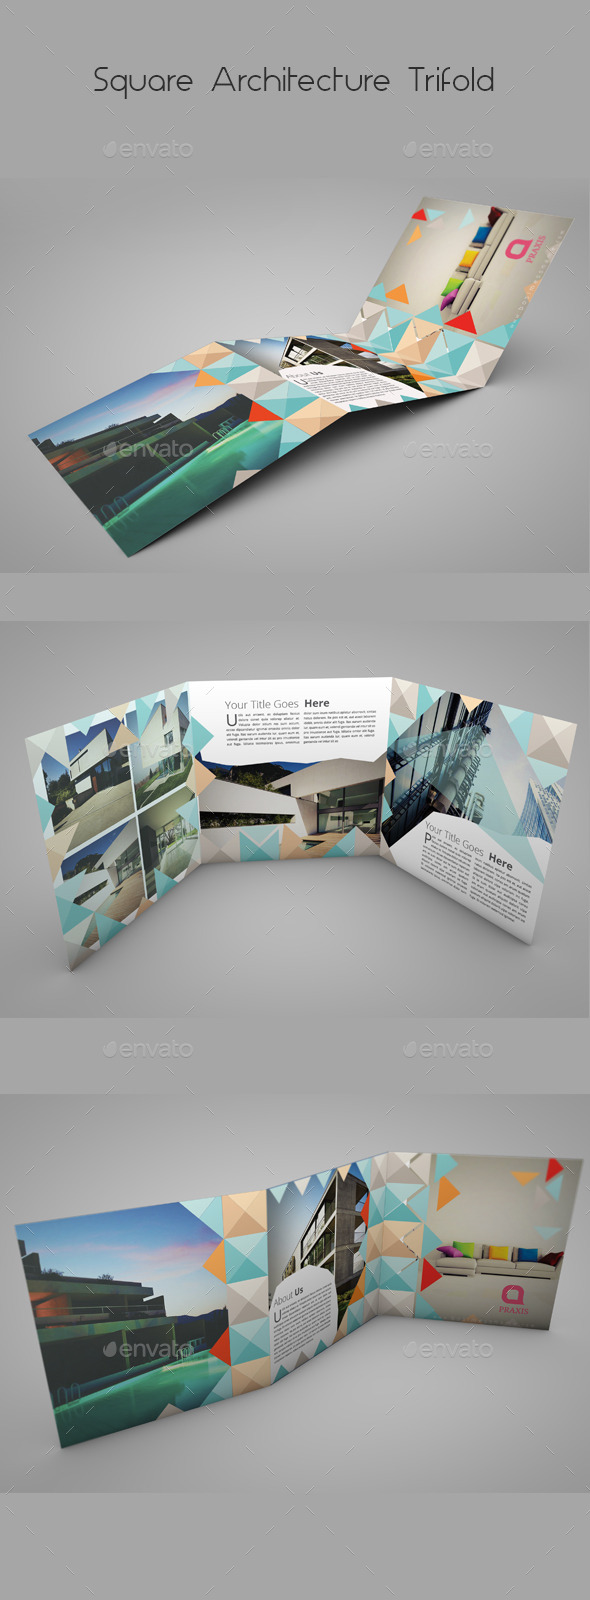 GraphicRiver Square Architecture Trifold 9826291